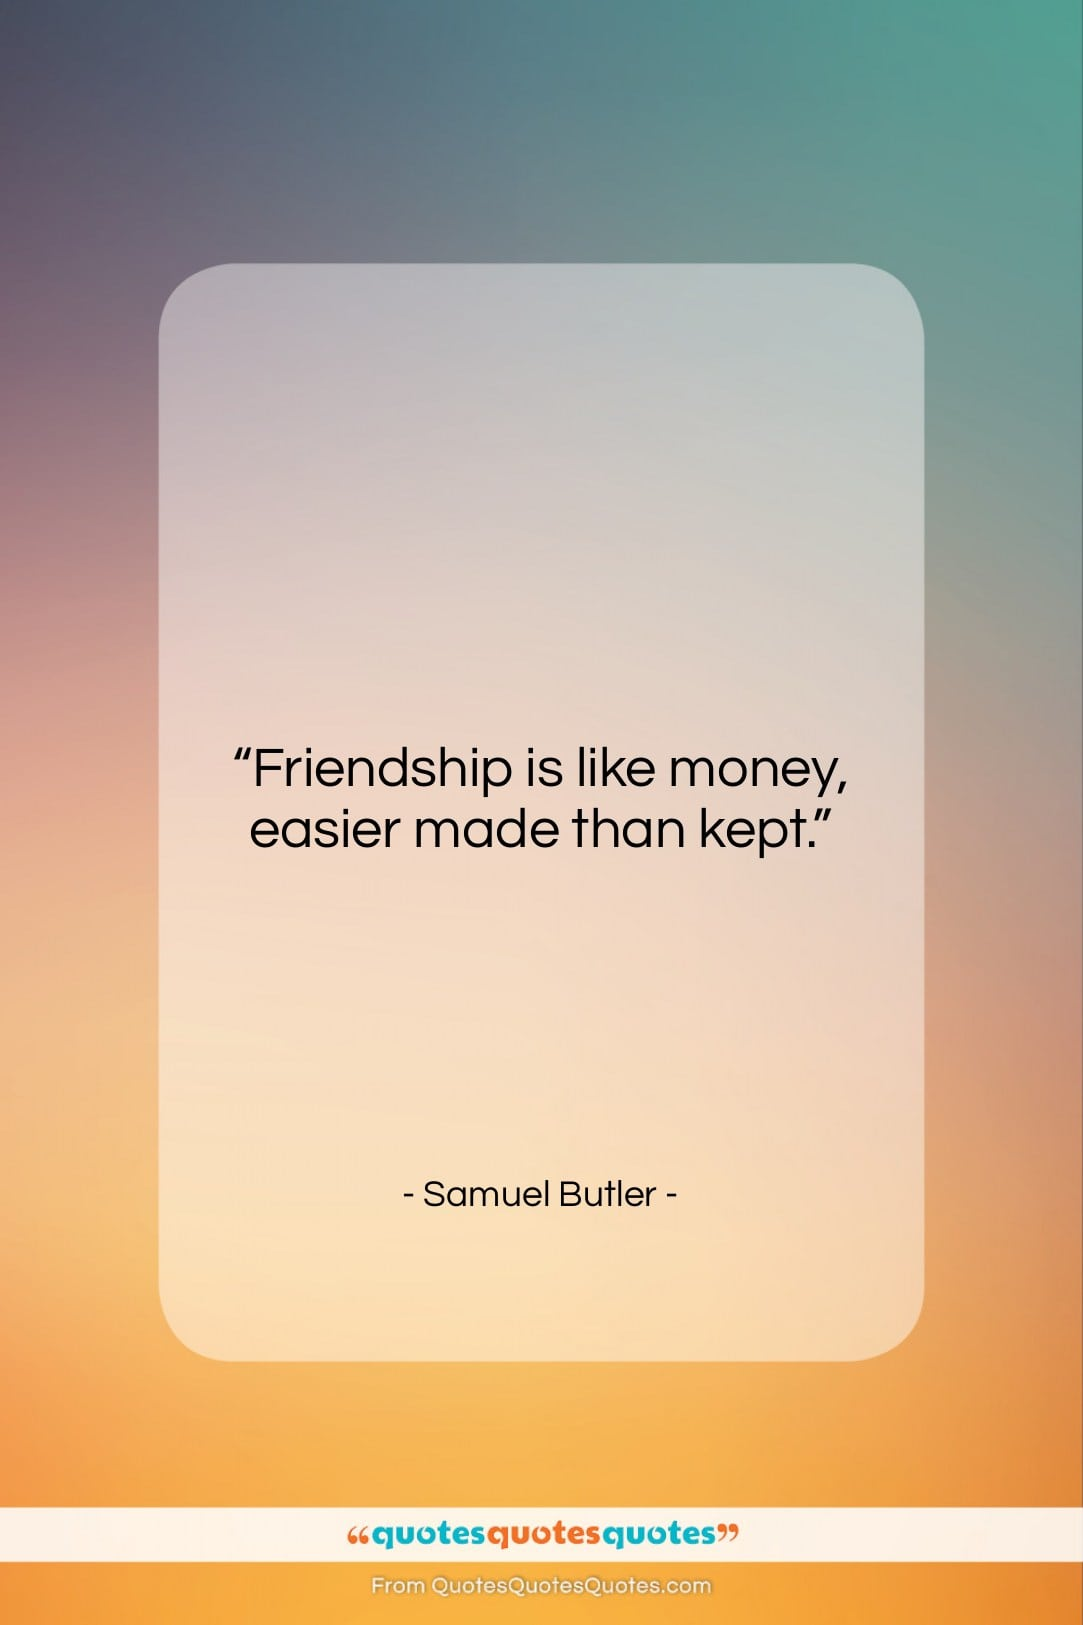 """Samuel Butler quote: """"Friendship is like money, easier made than…""""- at QuotesQuotesQuotes.com"""